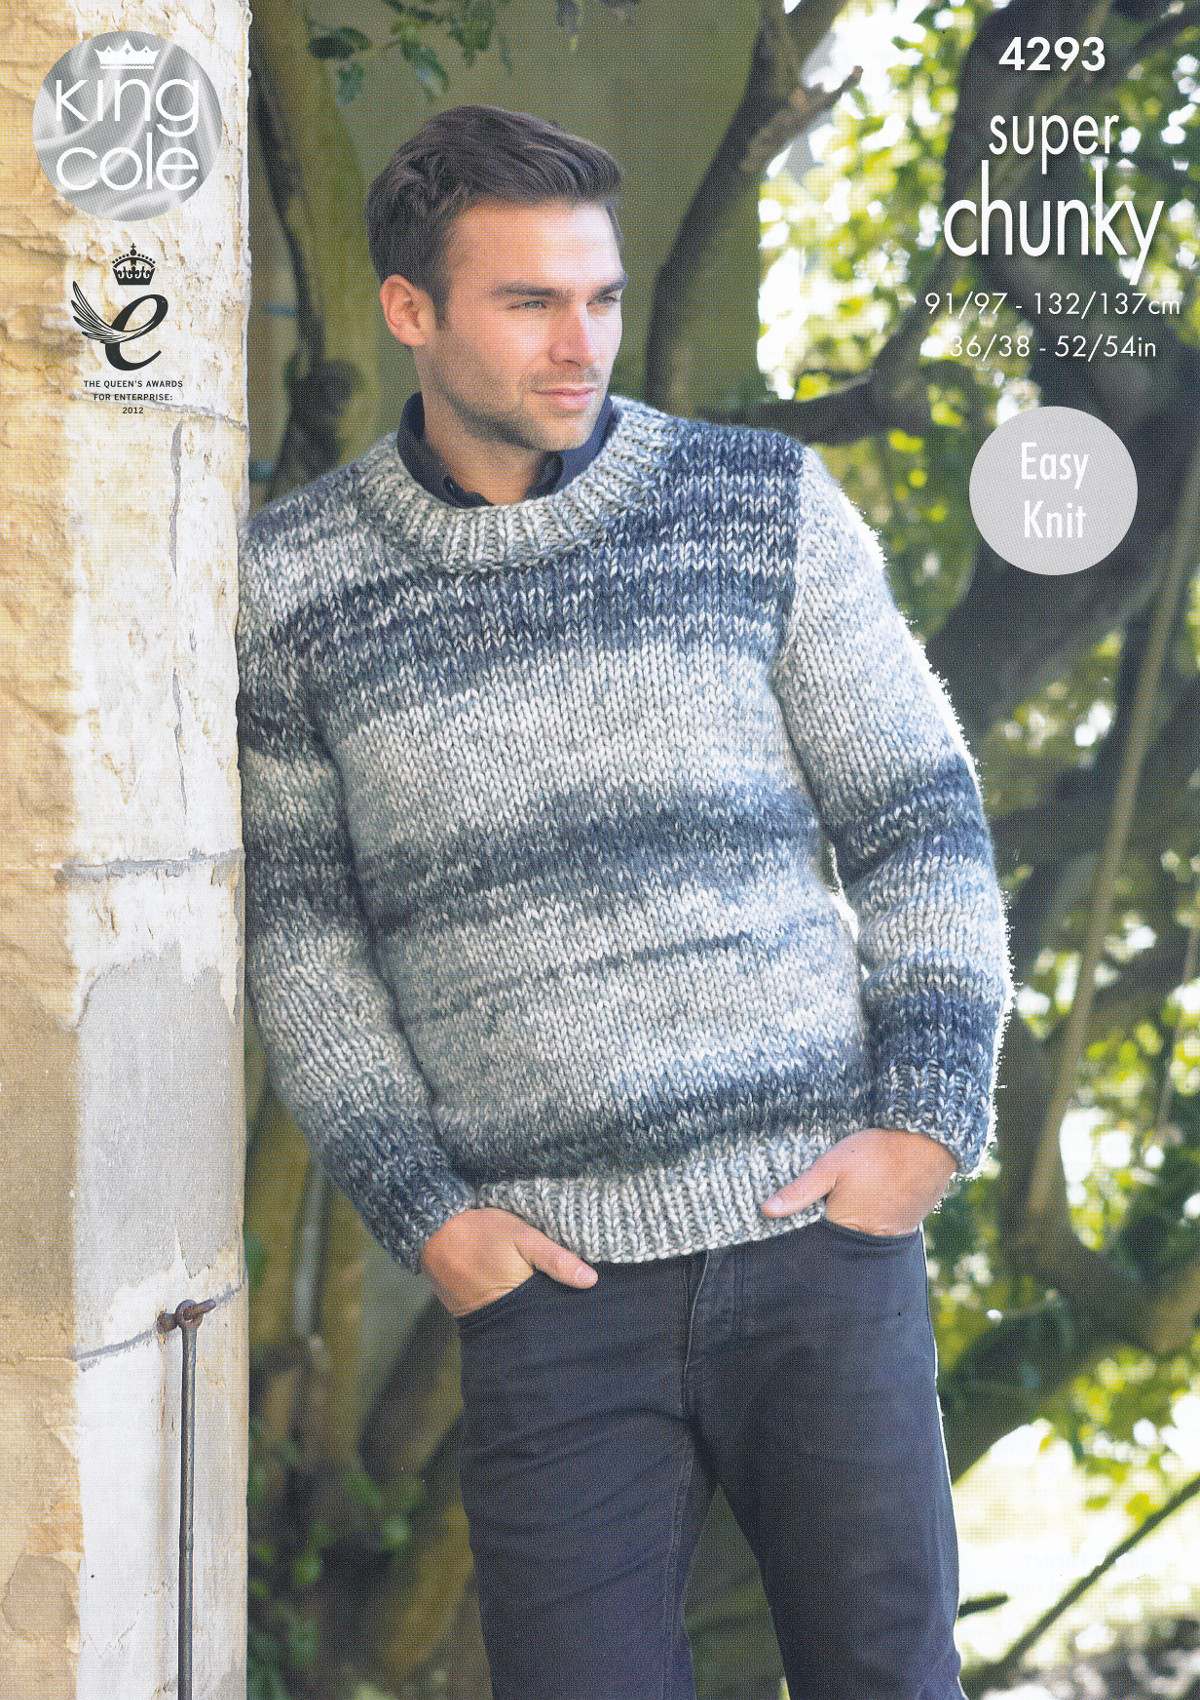 Easy Jumper Knitting Pattern Details About King Cole Mens Super Chunky Knitting Pattern Easy Knit Jumper Waistcoat 4293